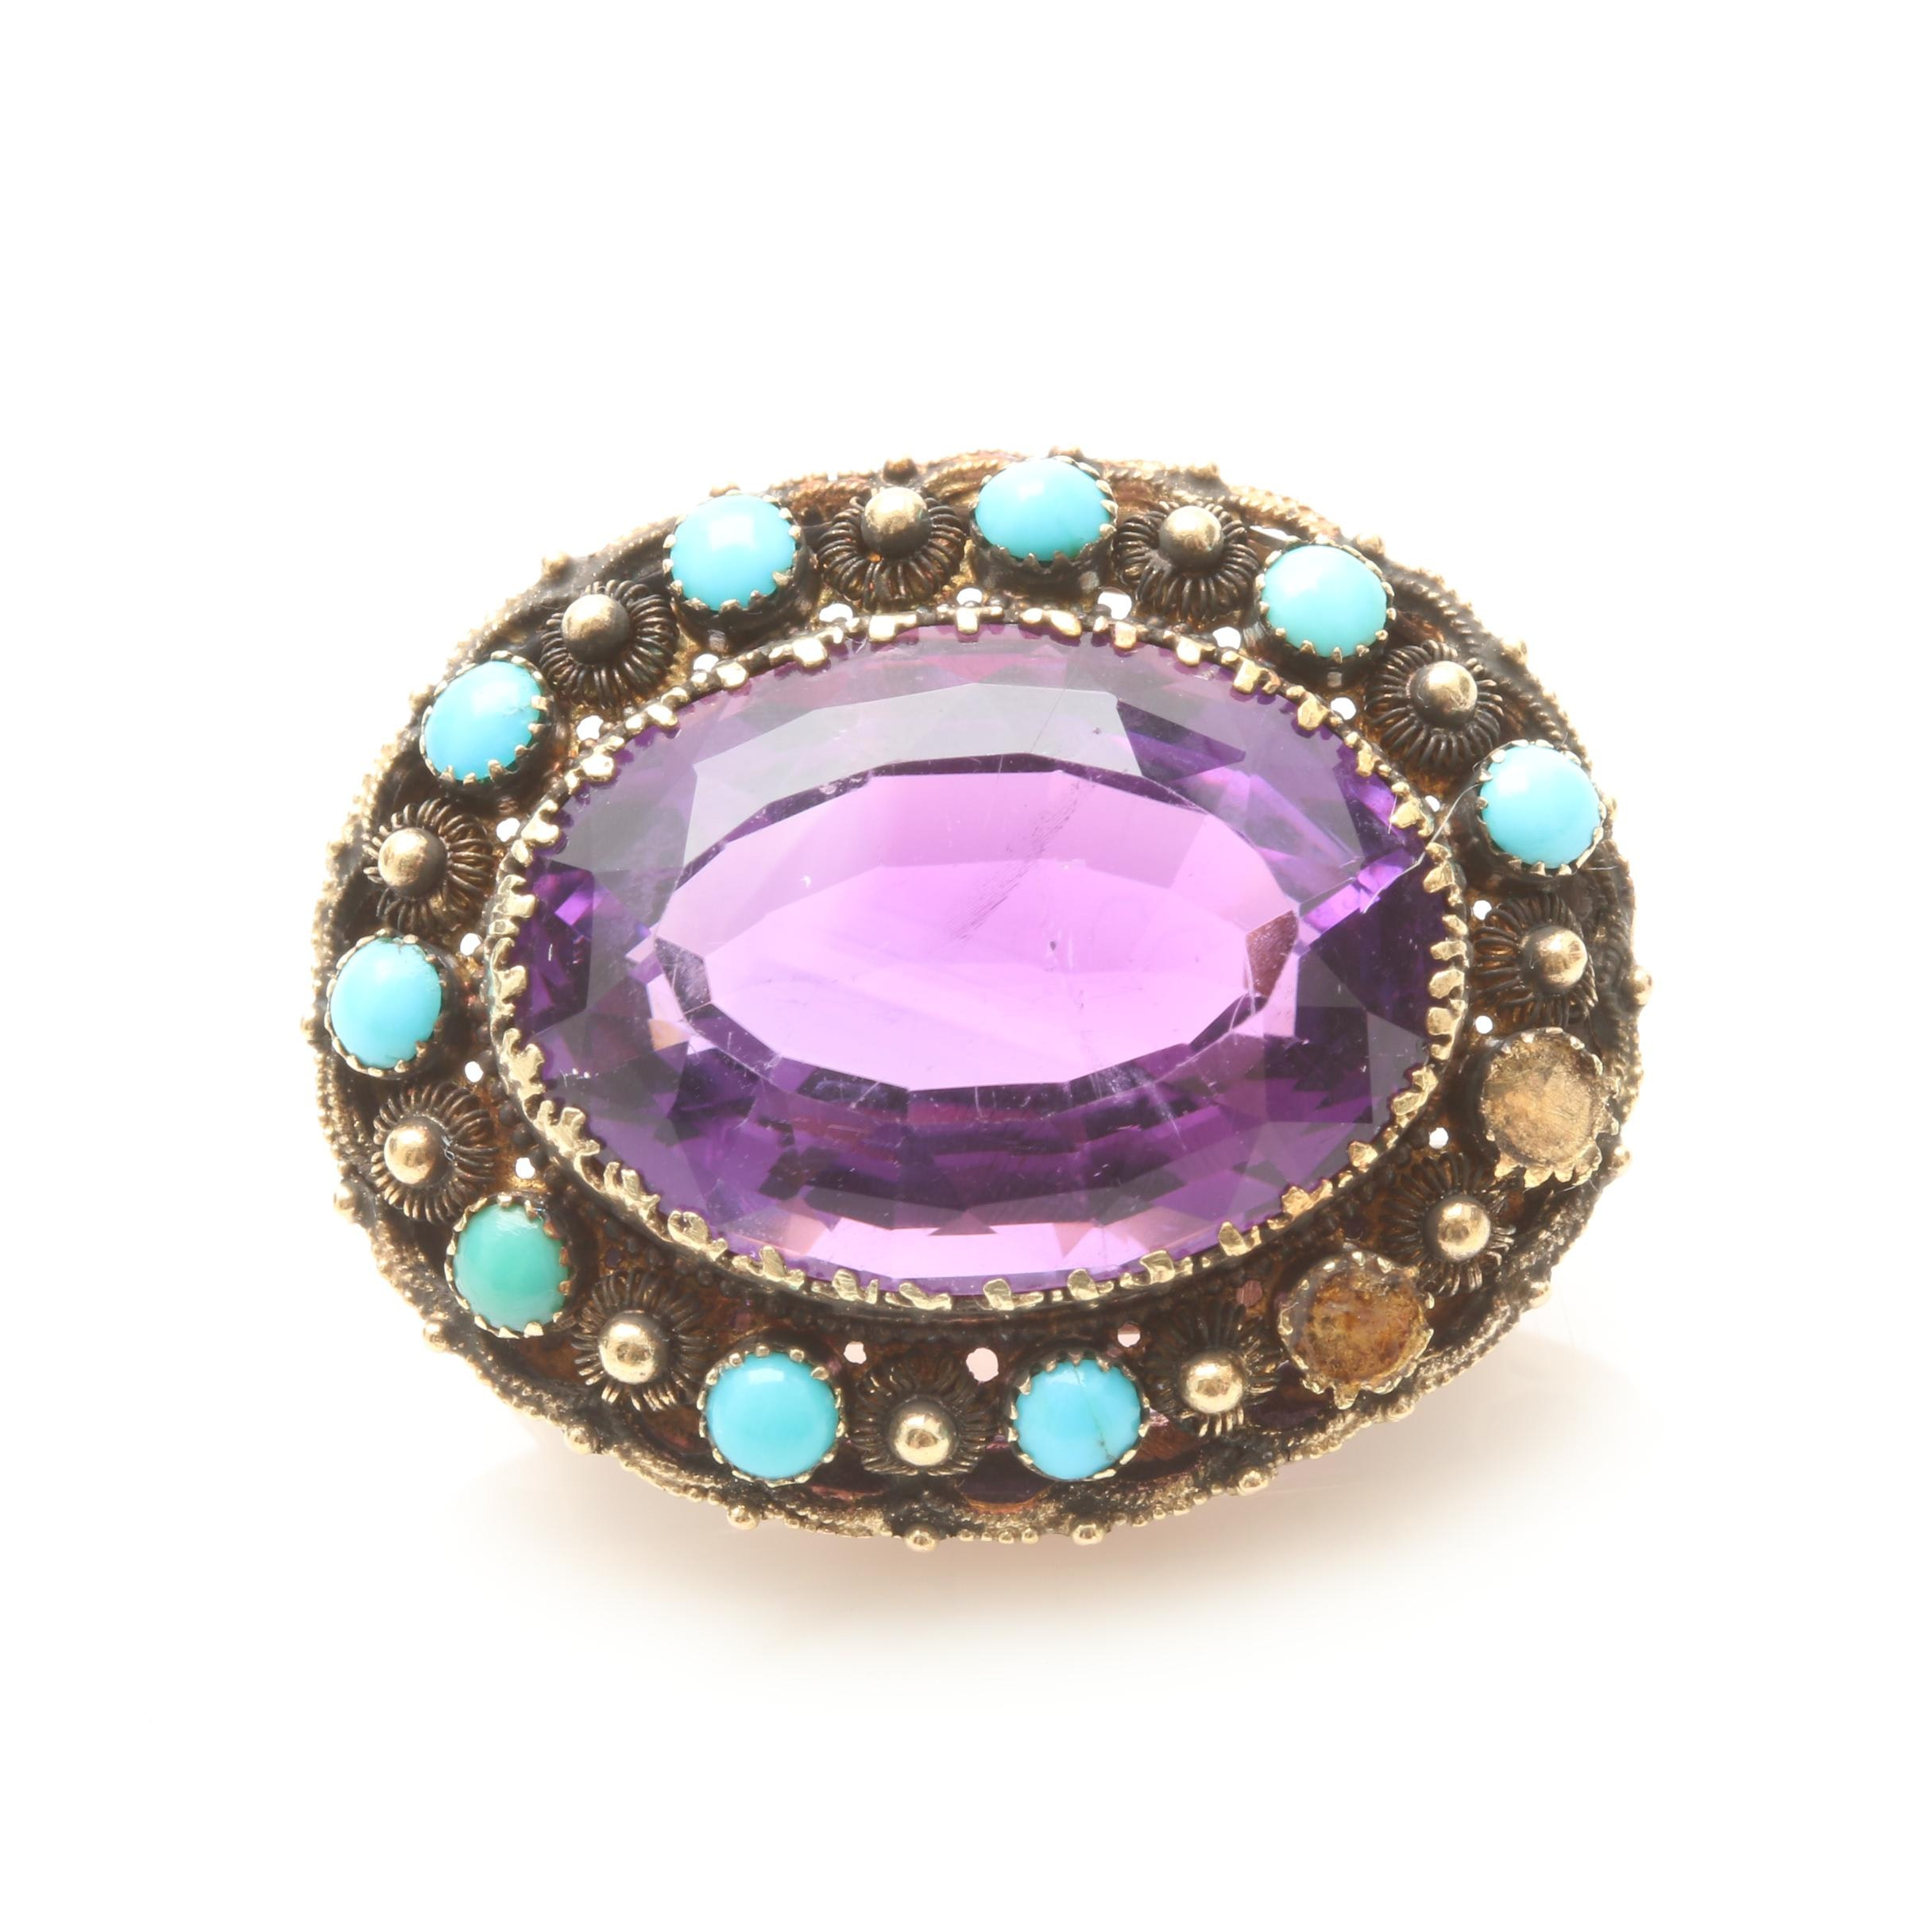 Vintage 10K Yellow Gold Amethyst and Turquoise Brooch